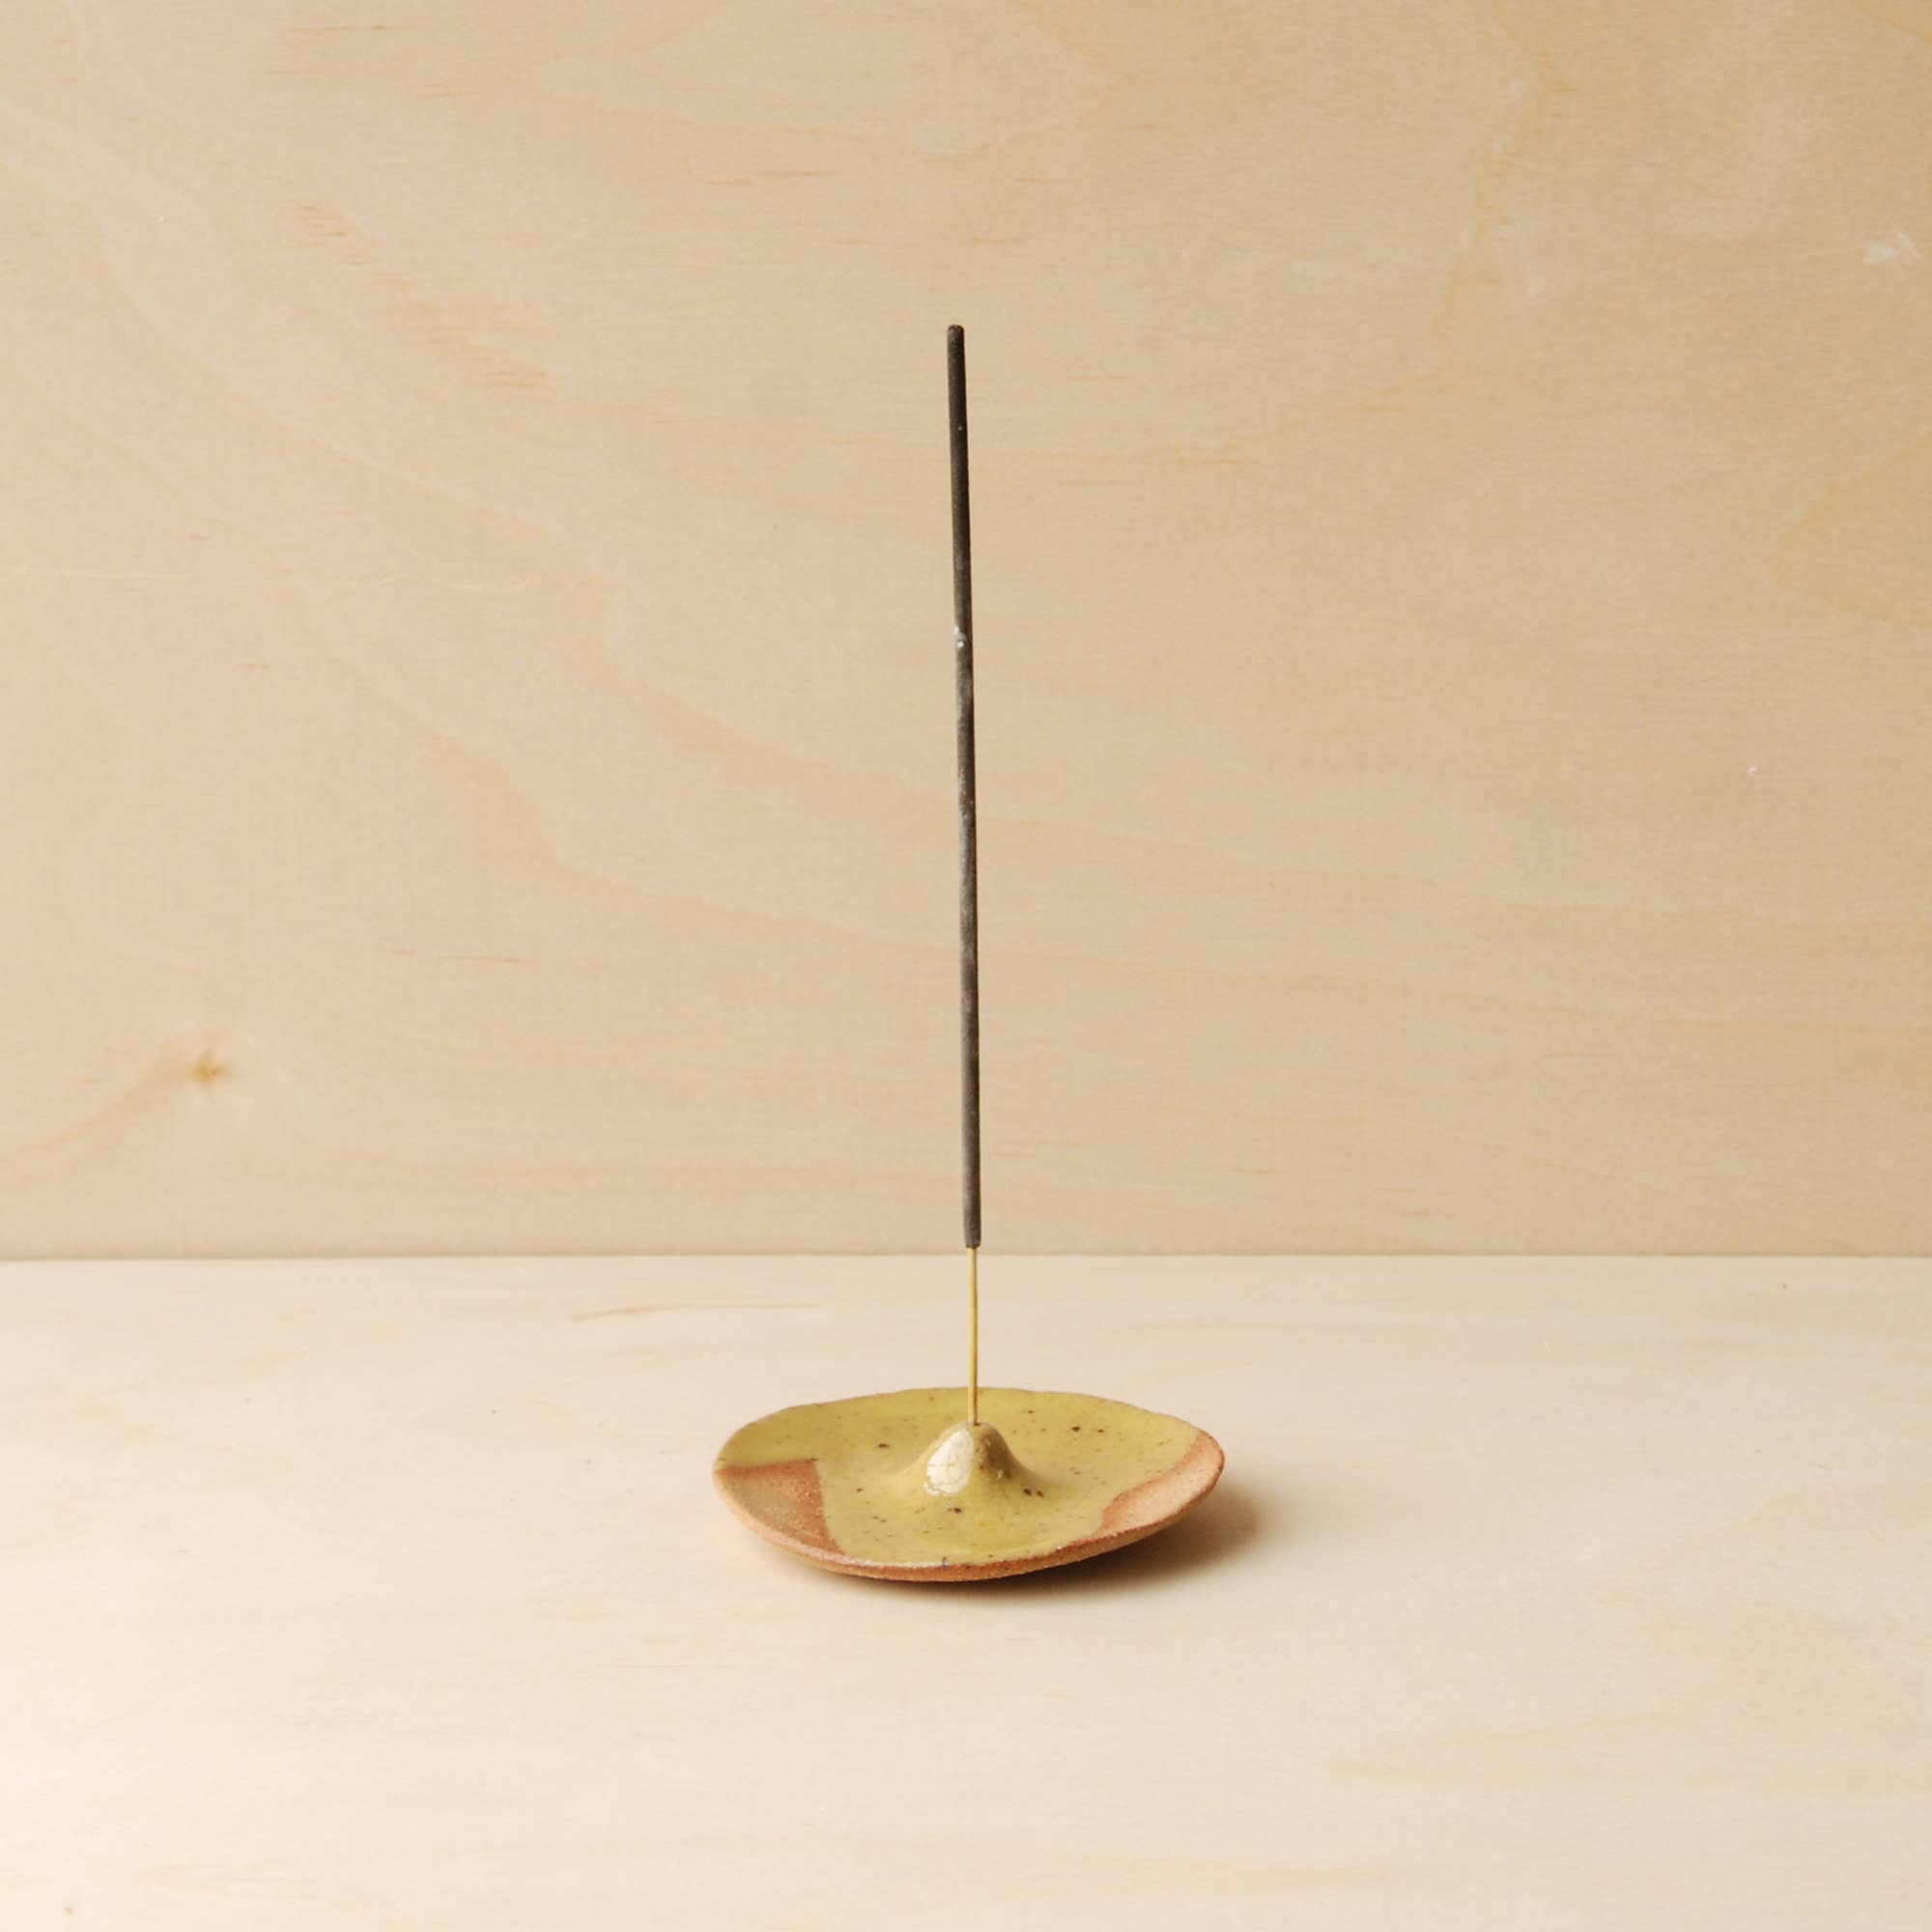 Incense Burner Modern Ceramic Incense Holder, Nightshift Ceramics, Handcrafted Home Goods and Gifts